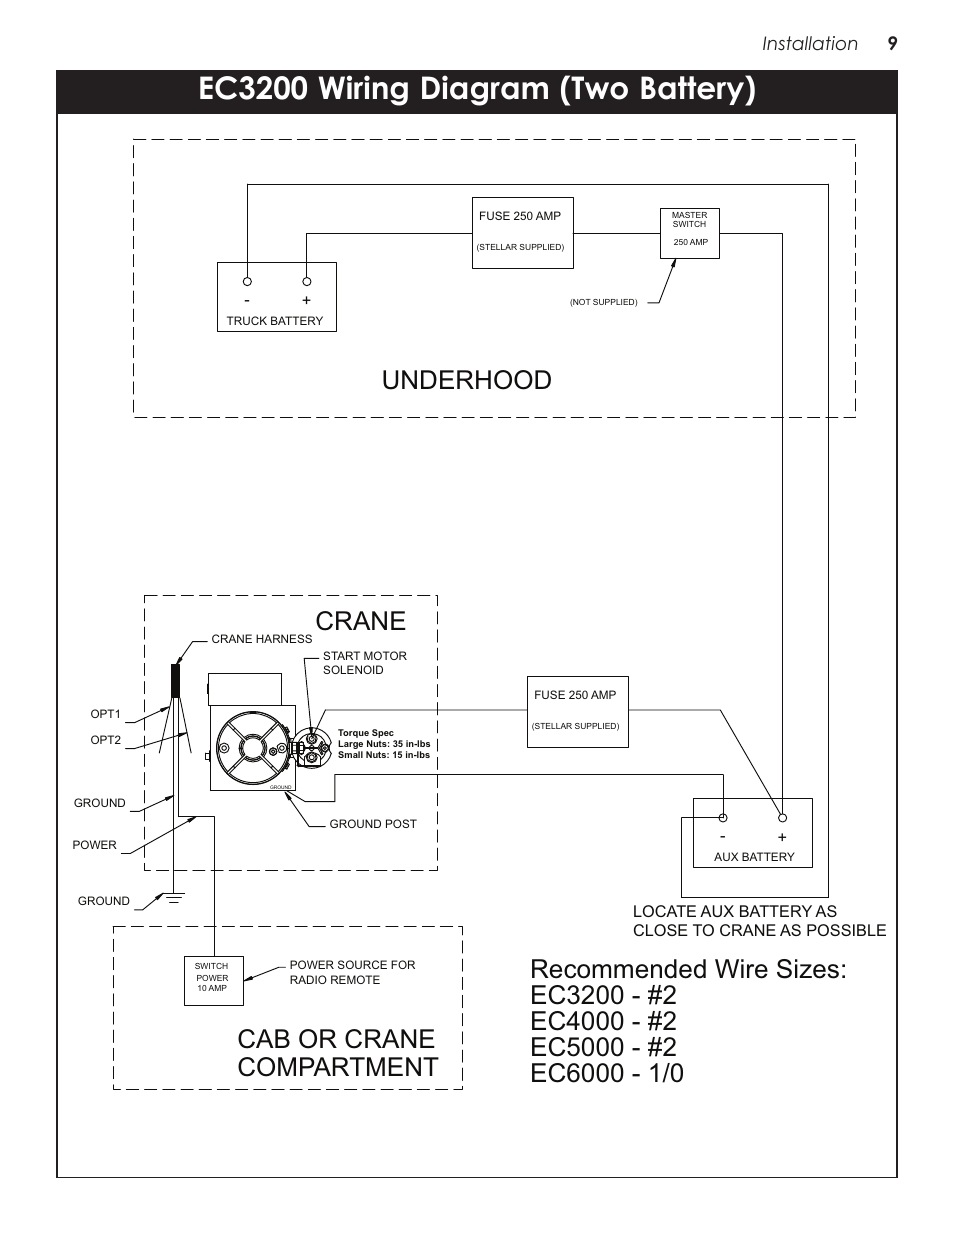 Ec3200    wiring       diagram     two battery   Ec3200    wiring       diagram     one battery   Underhood   Stellar